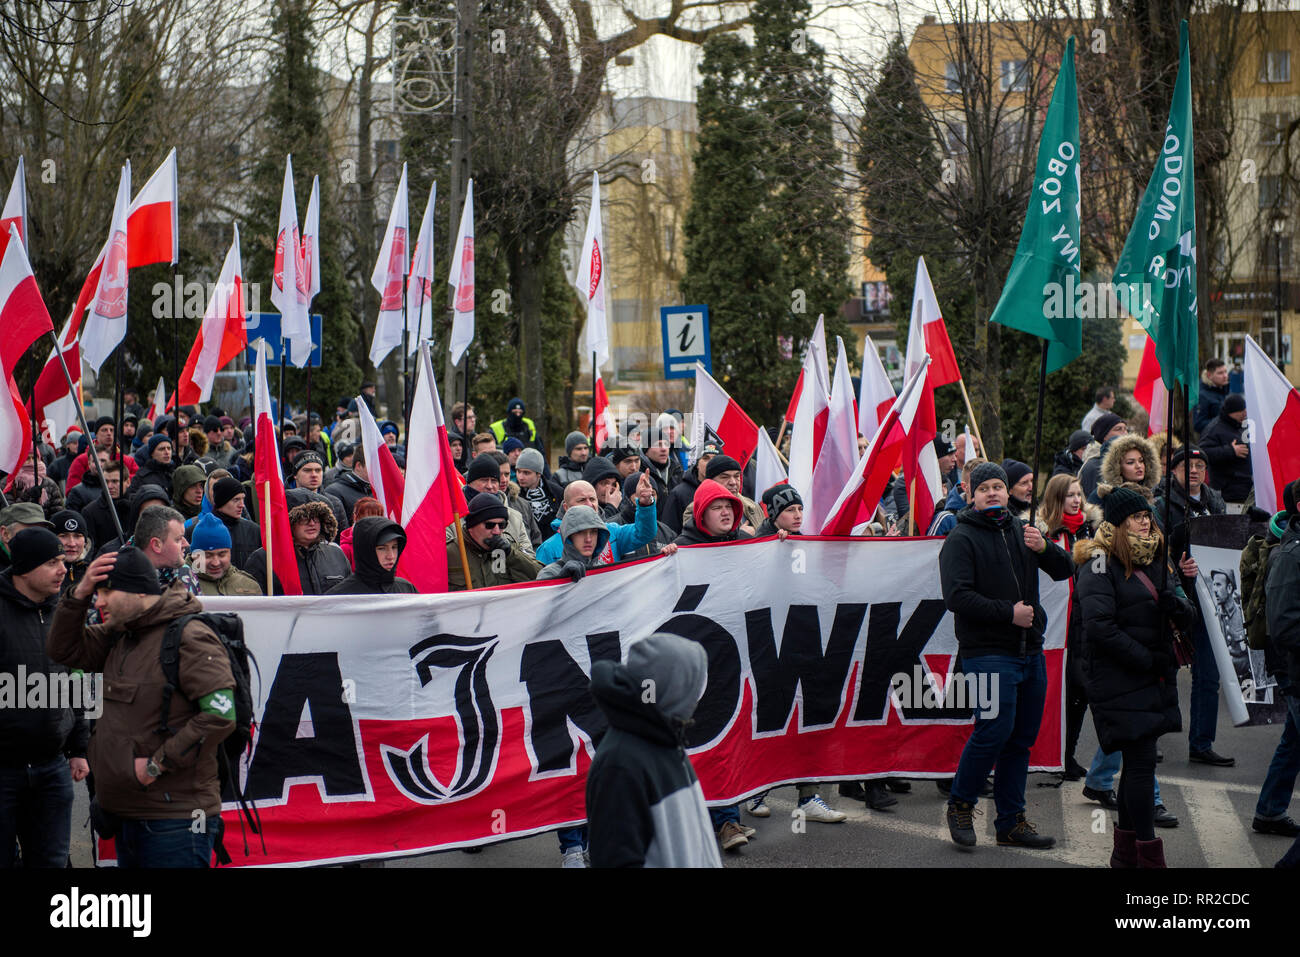 """Polish nationalists seen marching to commemorate the Cursed Soldiers. Polish nationalists organized a commemorative march of the """"Cursed Soldiers"""" in the city of Hajnowka next to the Belarusian border. The Cursed Soldiers also known as the Doomed Soldiers were anti-communist resistant fighters after WWII, however they were also famous of committing crimes against civilians, mostly ethnic Belarusians. - Stock Image"""